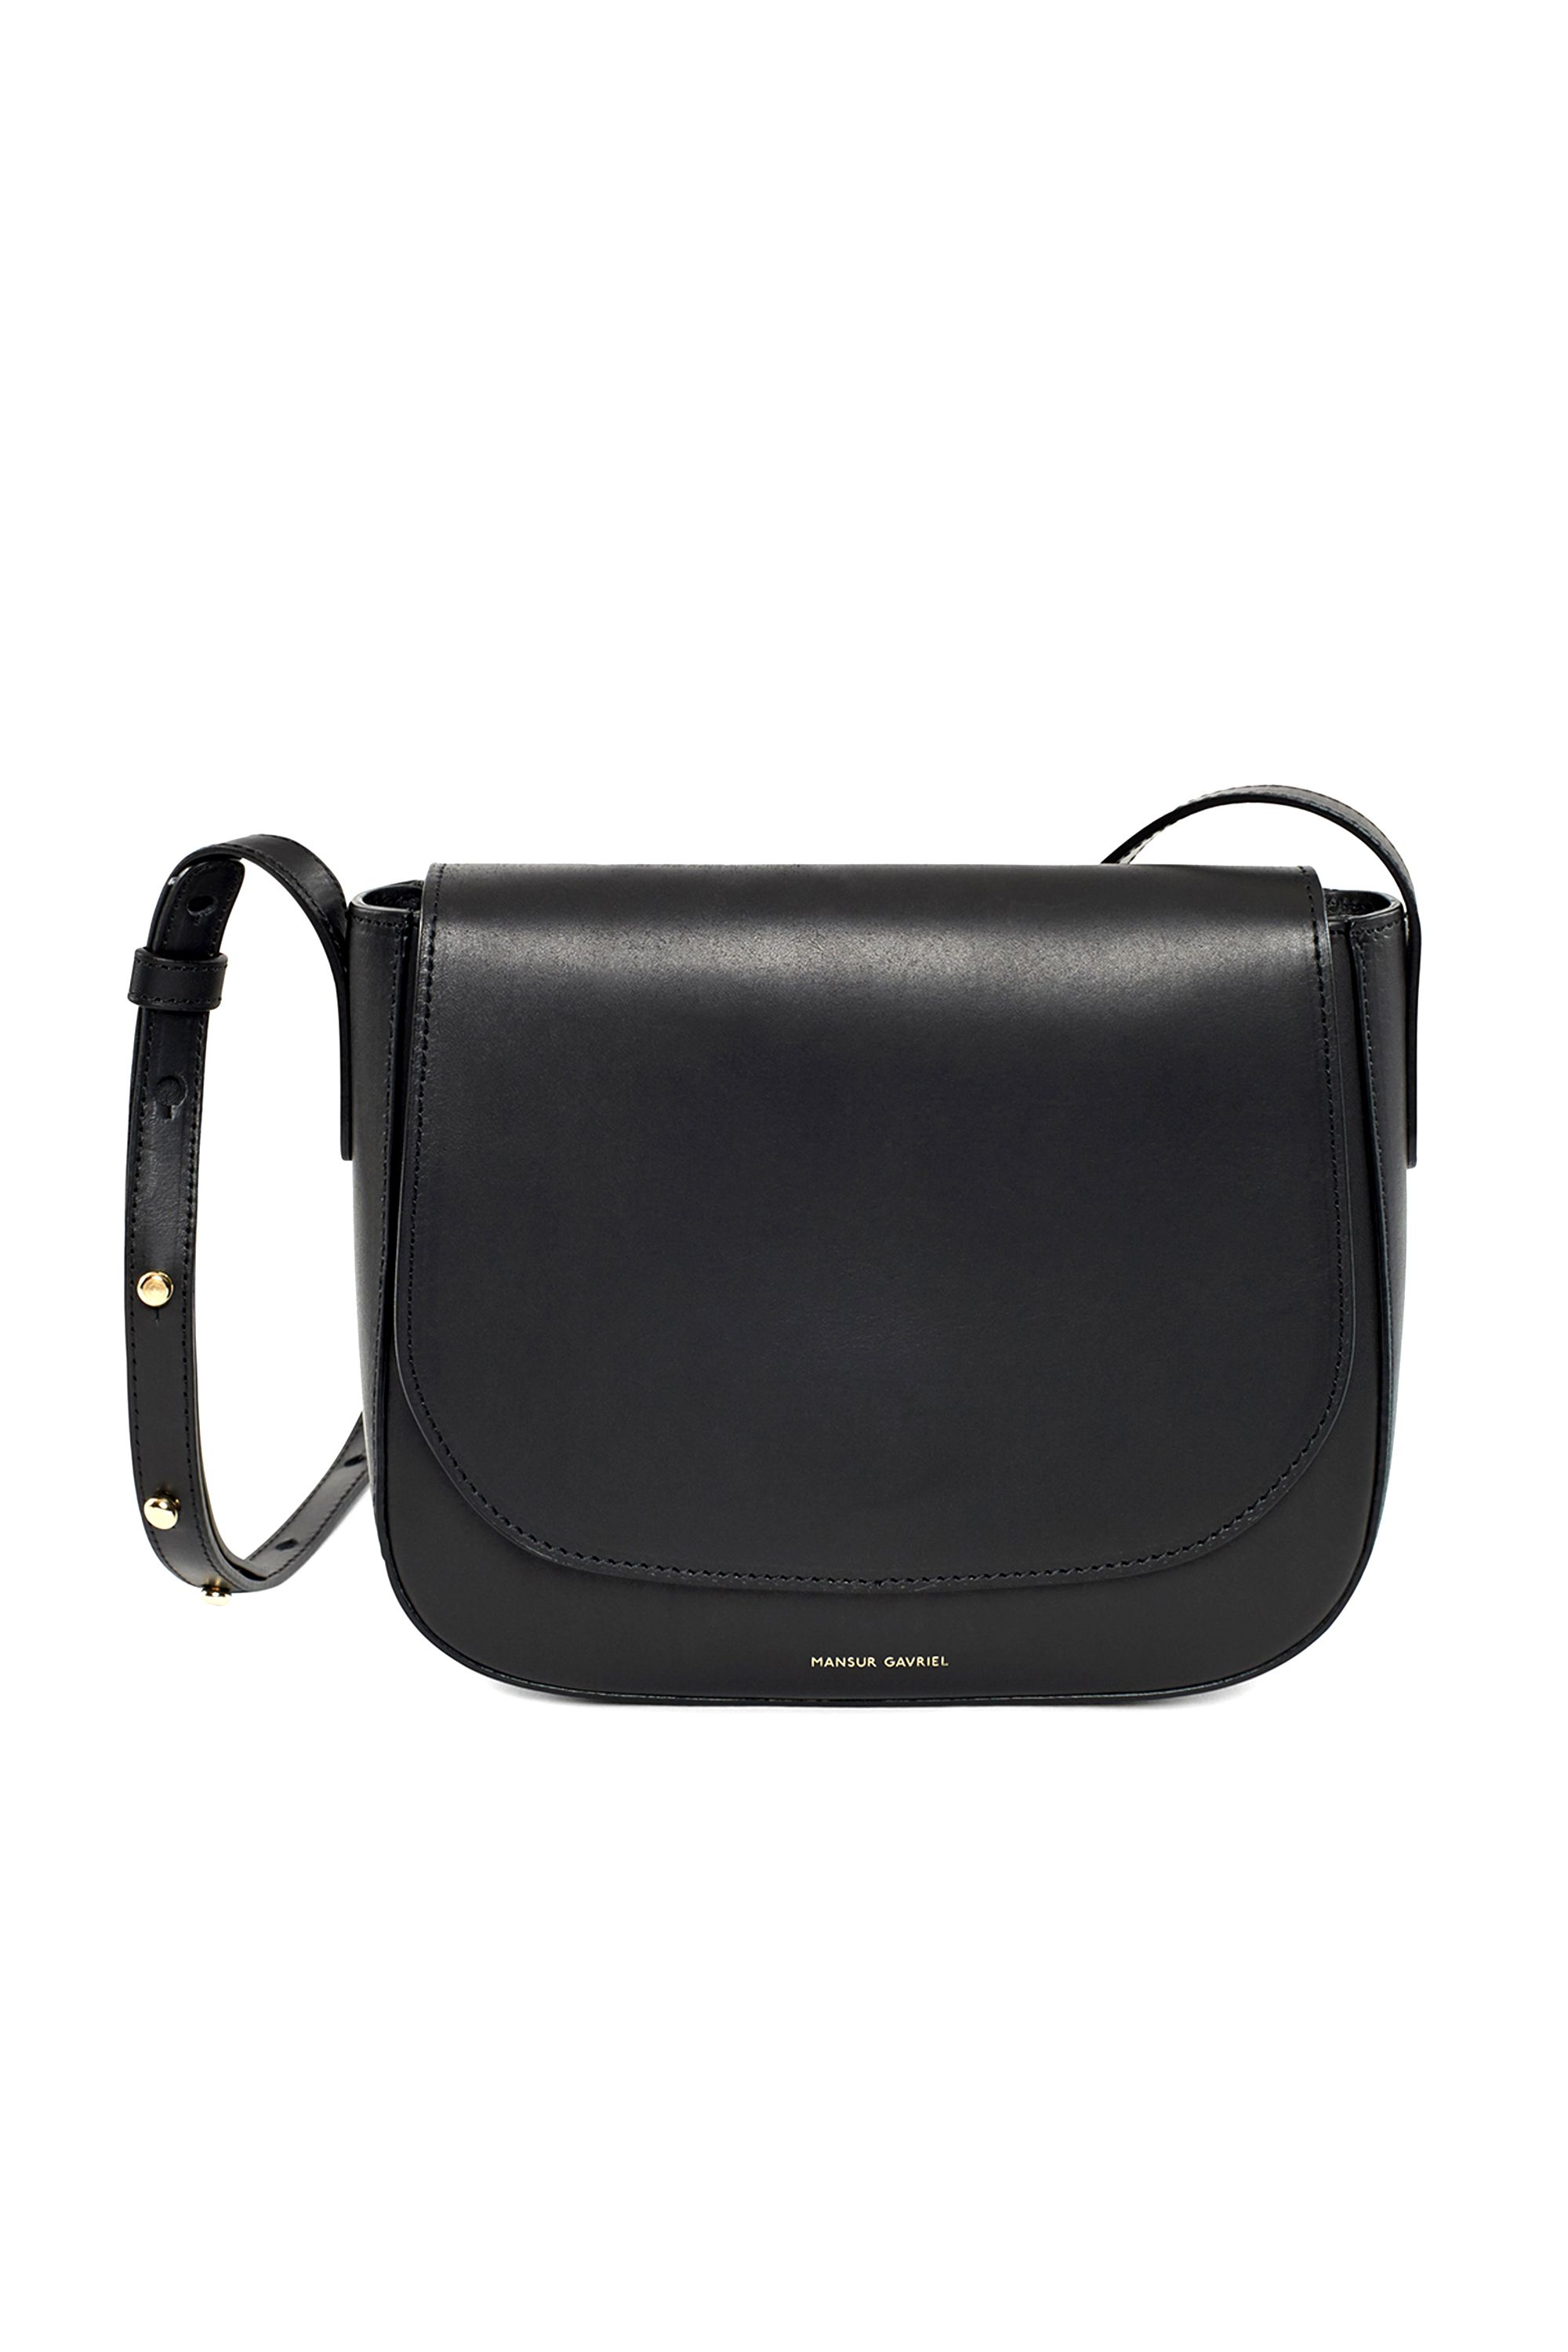 8405de7698e5 One of 20 Black Crossbody Bags That Work With Everything - MANSUR GAVRIEL  (=)